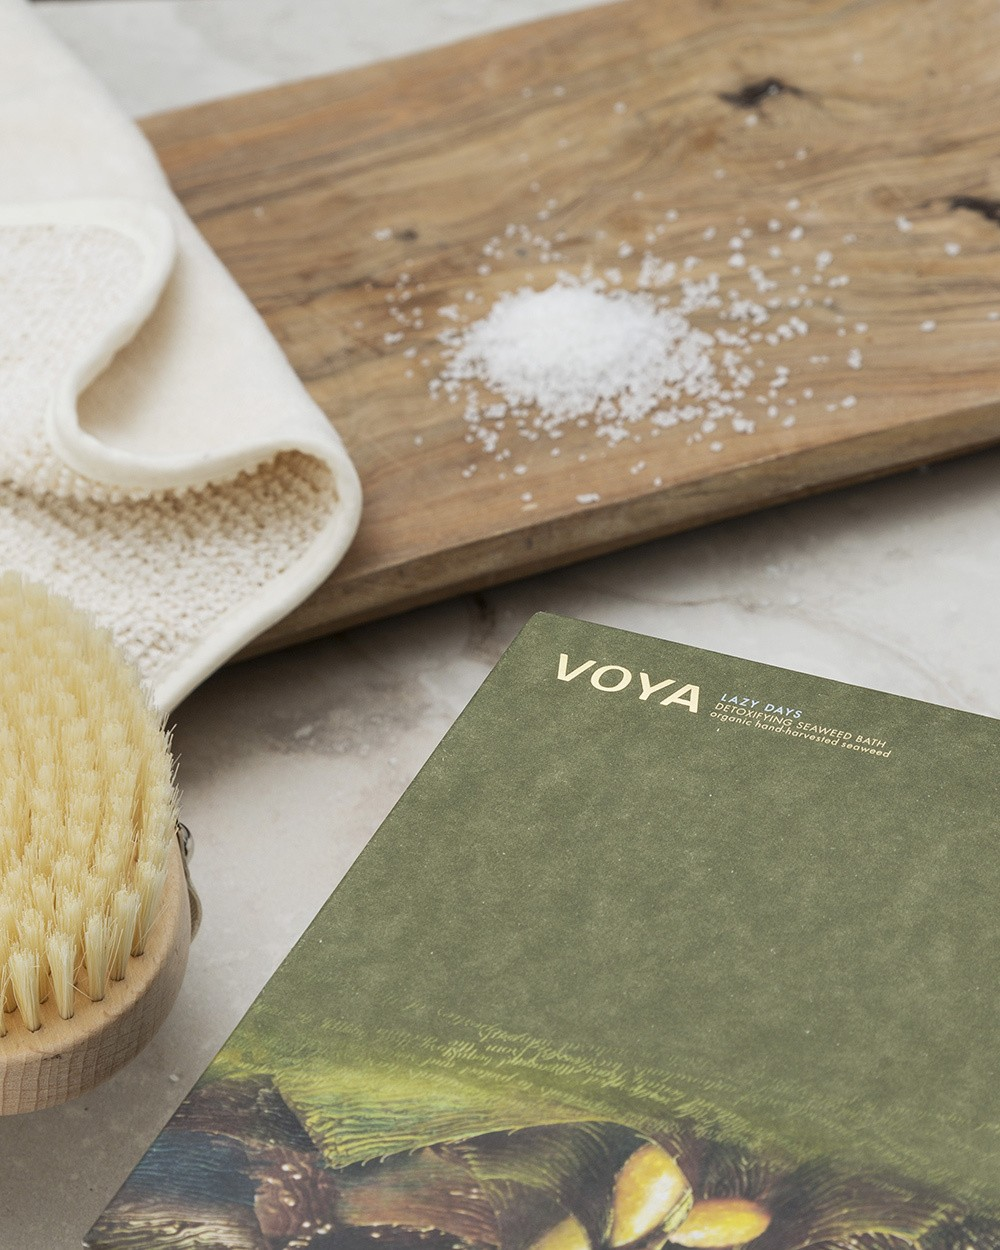 Voya Lazy Days - Seaweed Bath